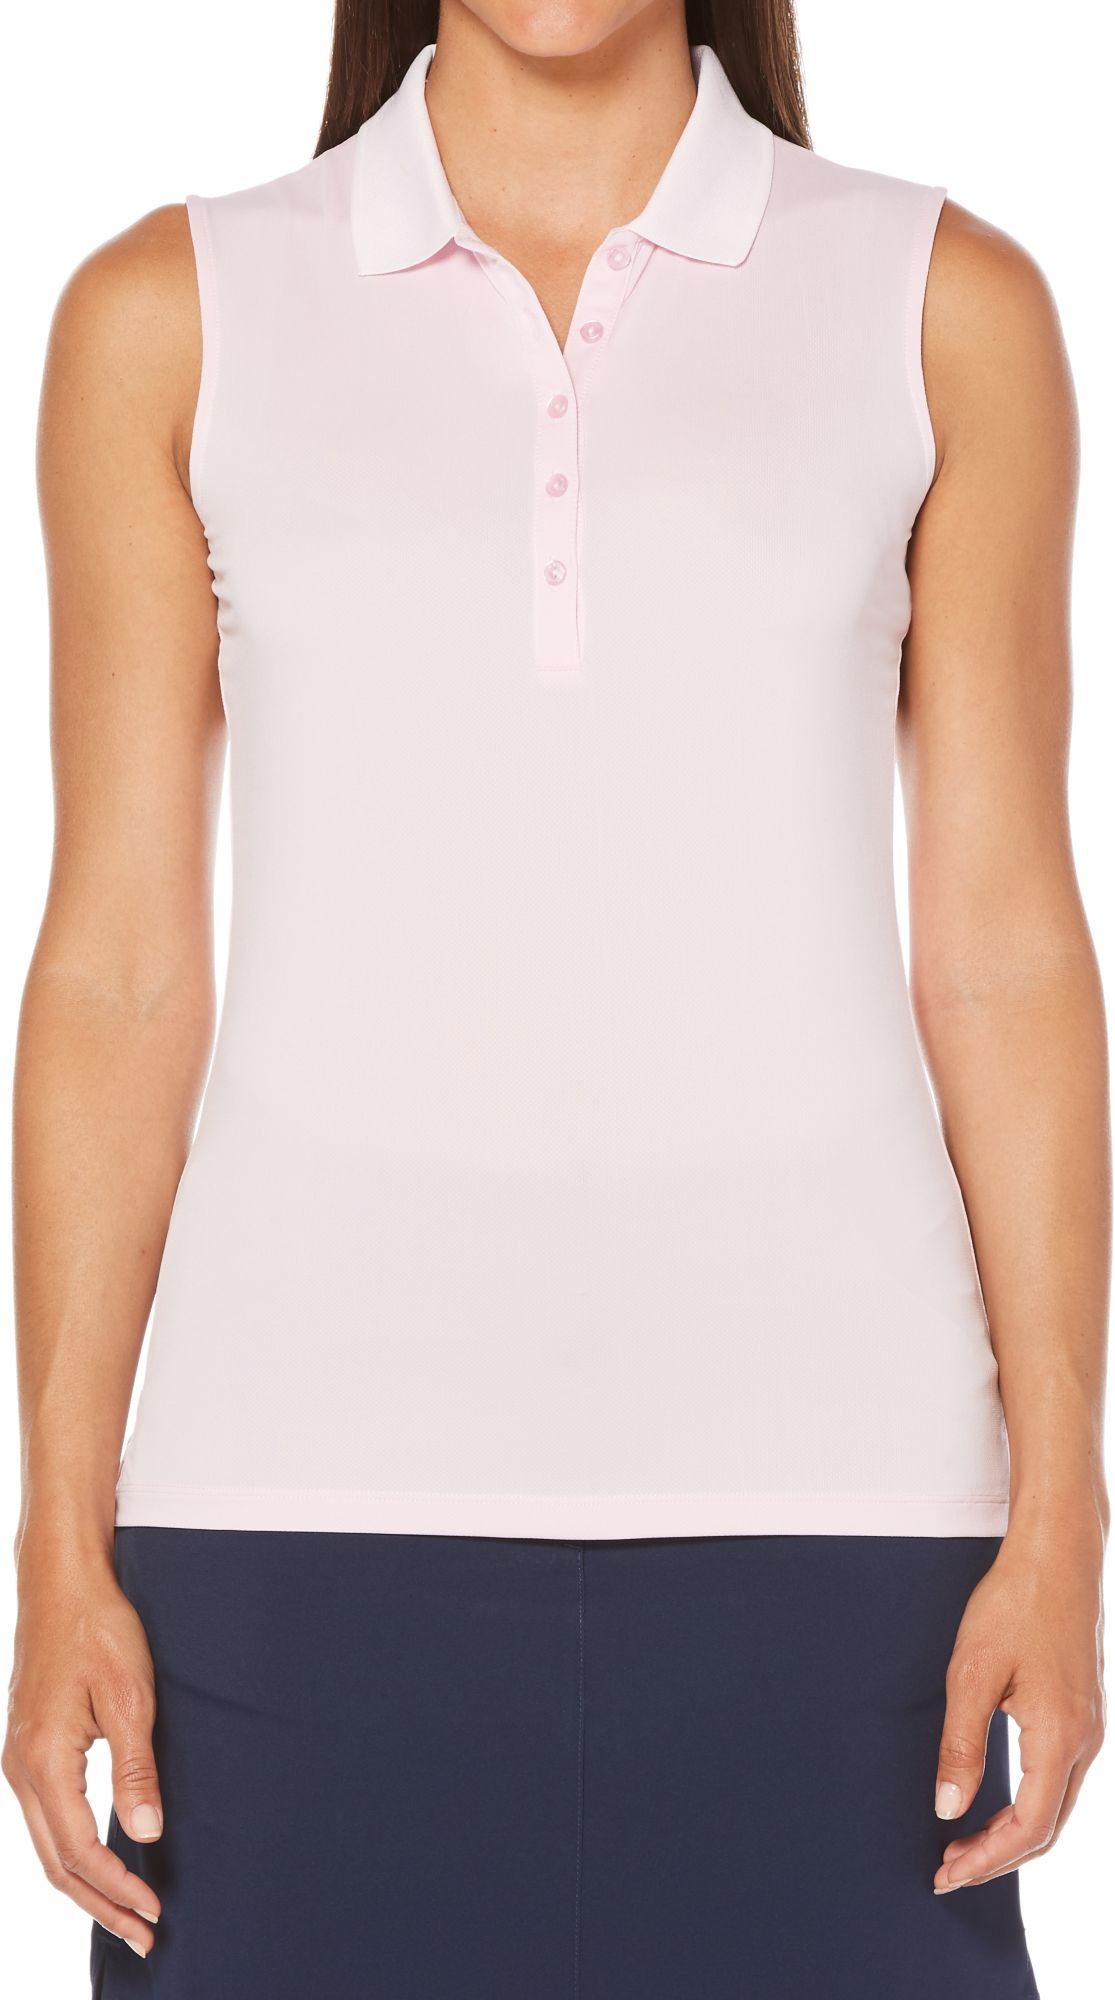 Callaway Mens Cooling Solid Micro Hex Polo